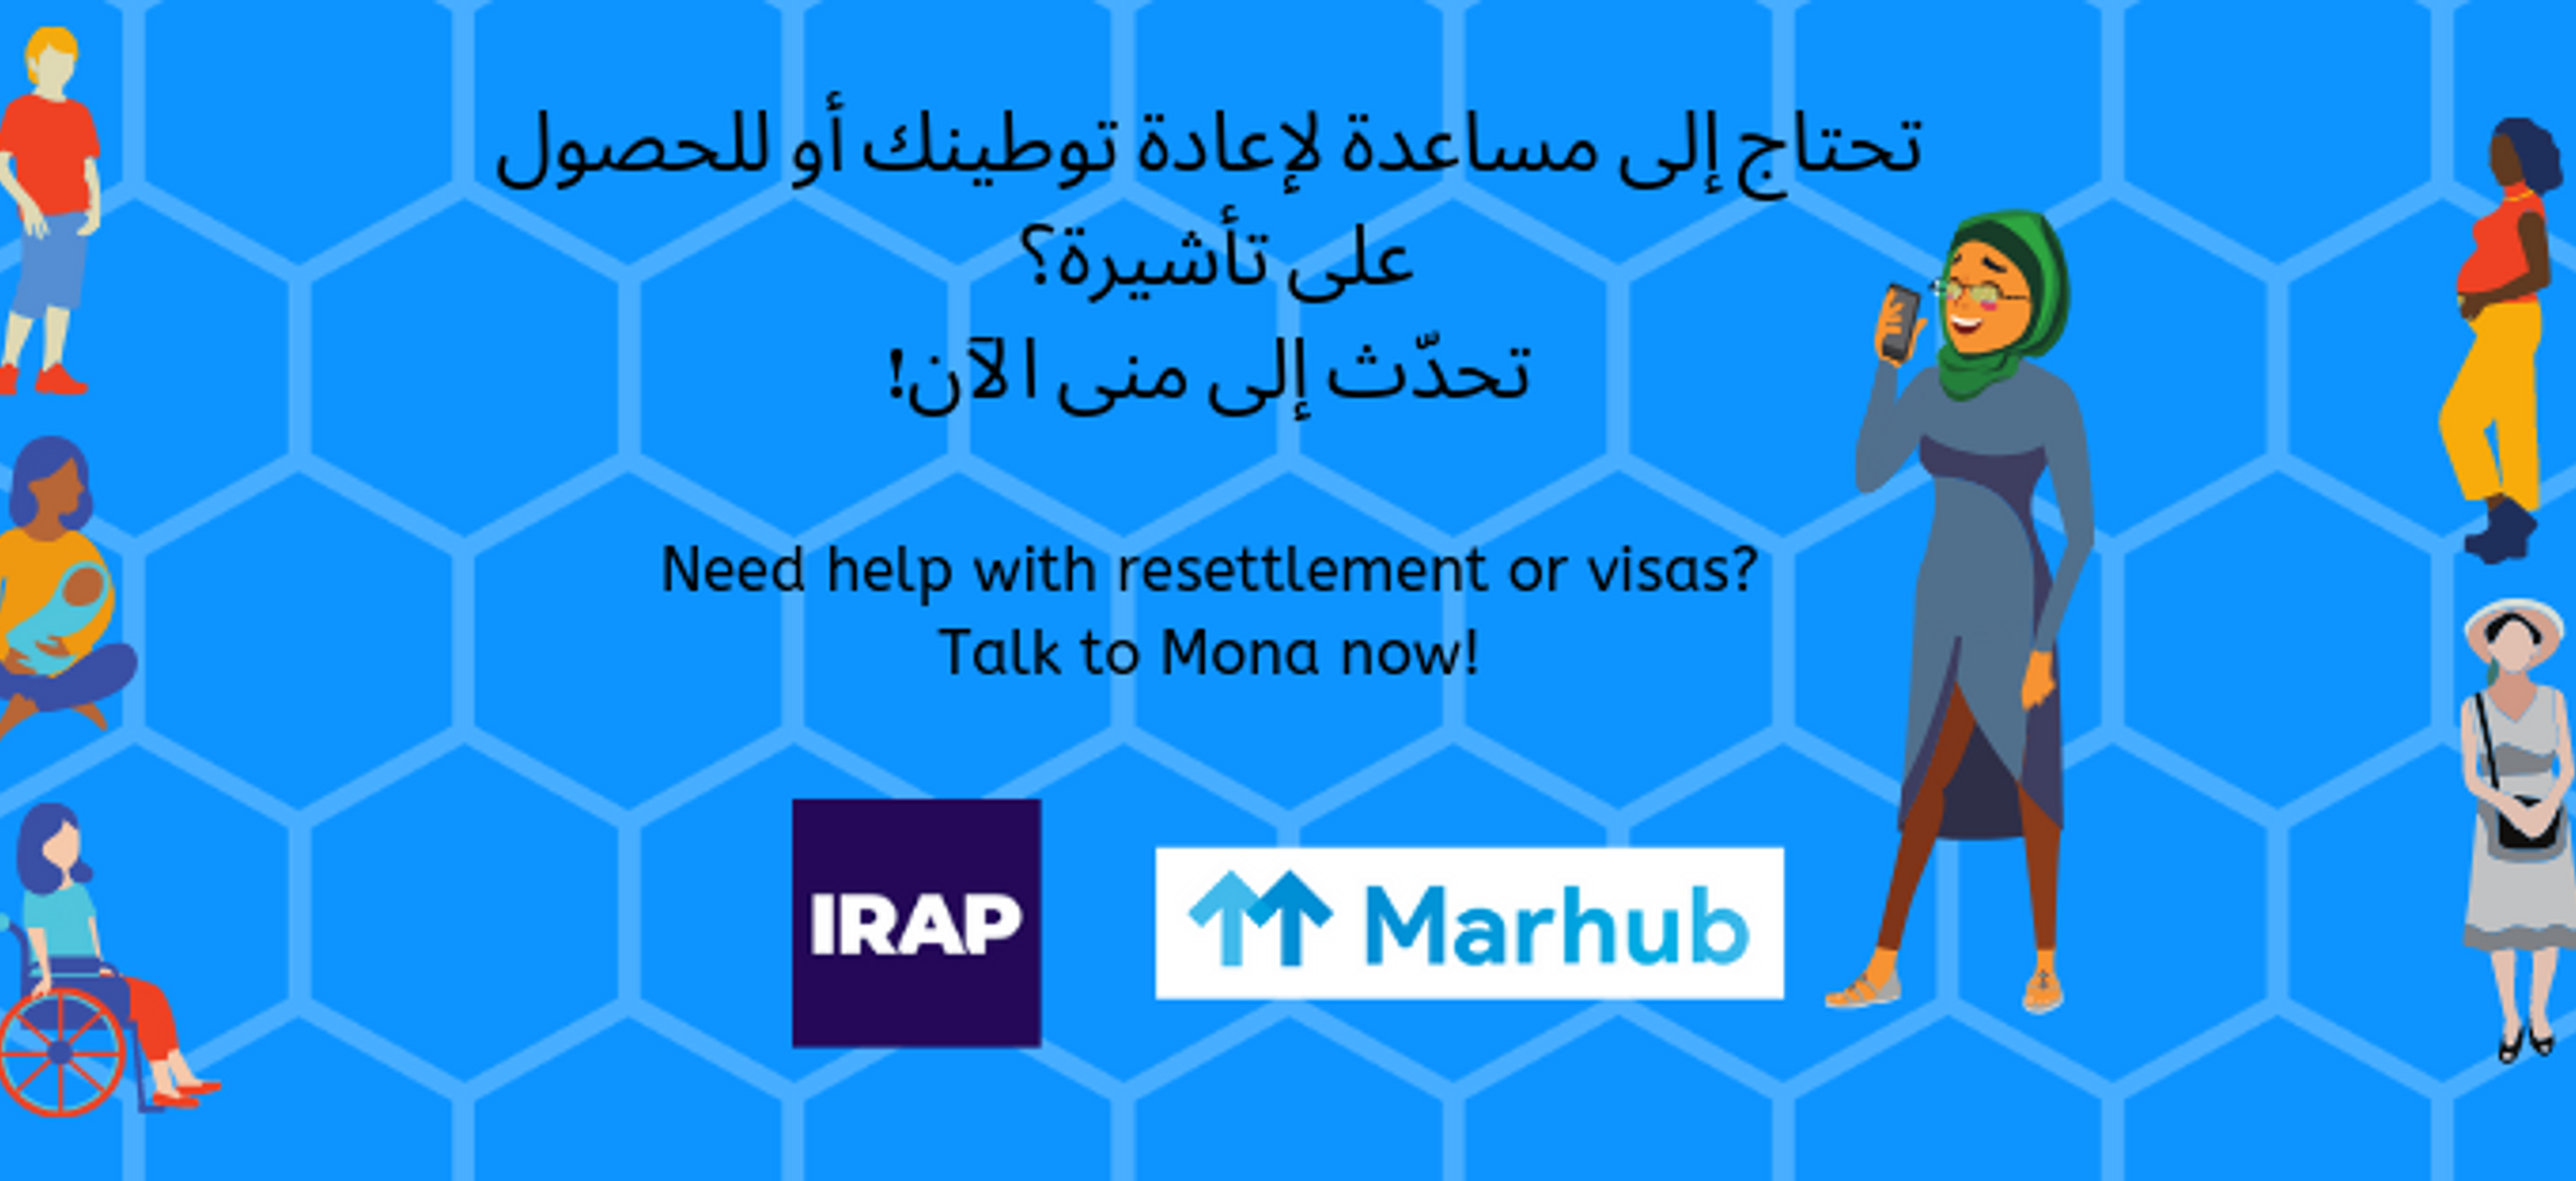 "A graphic reads ""Need help with resettlement or visas? Talk to Mona now!"" in Arabic and then English. Centered along the bottom are the square IRAP logo (acronym in bold white text against purple background) and a horizontal white rectangle with the text ""Marhub"" in light blue text next to two upward pointing light blue arrows. There are illustrations of 10 or so diverse people against a light blue honeycomb background. There are many different kinds of people represented - men, women, young, old, hijabis, disabled, parents, pregnant, Black, white, Asian, Middle Eastern."